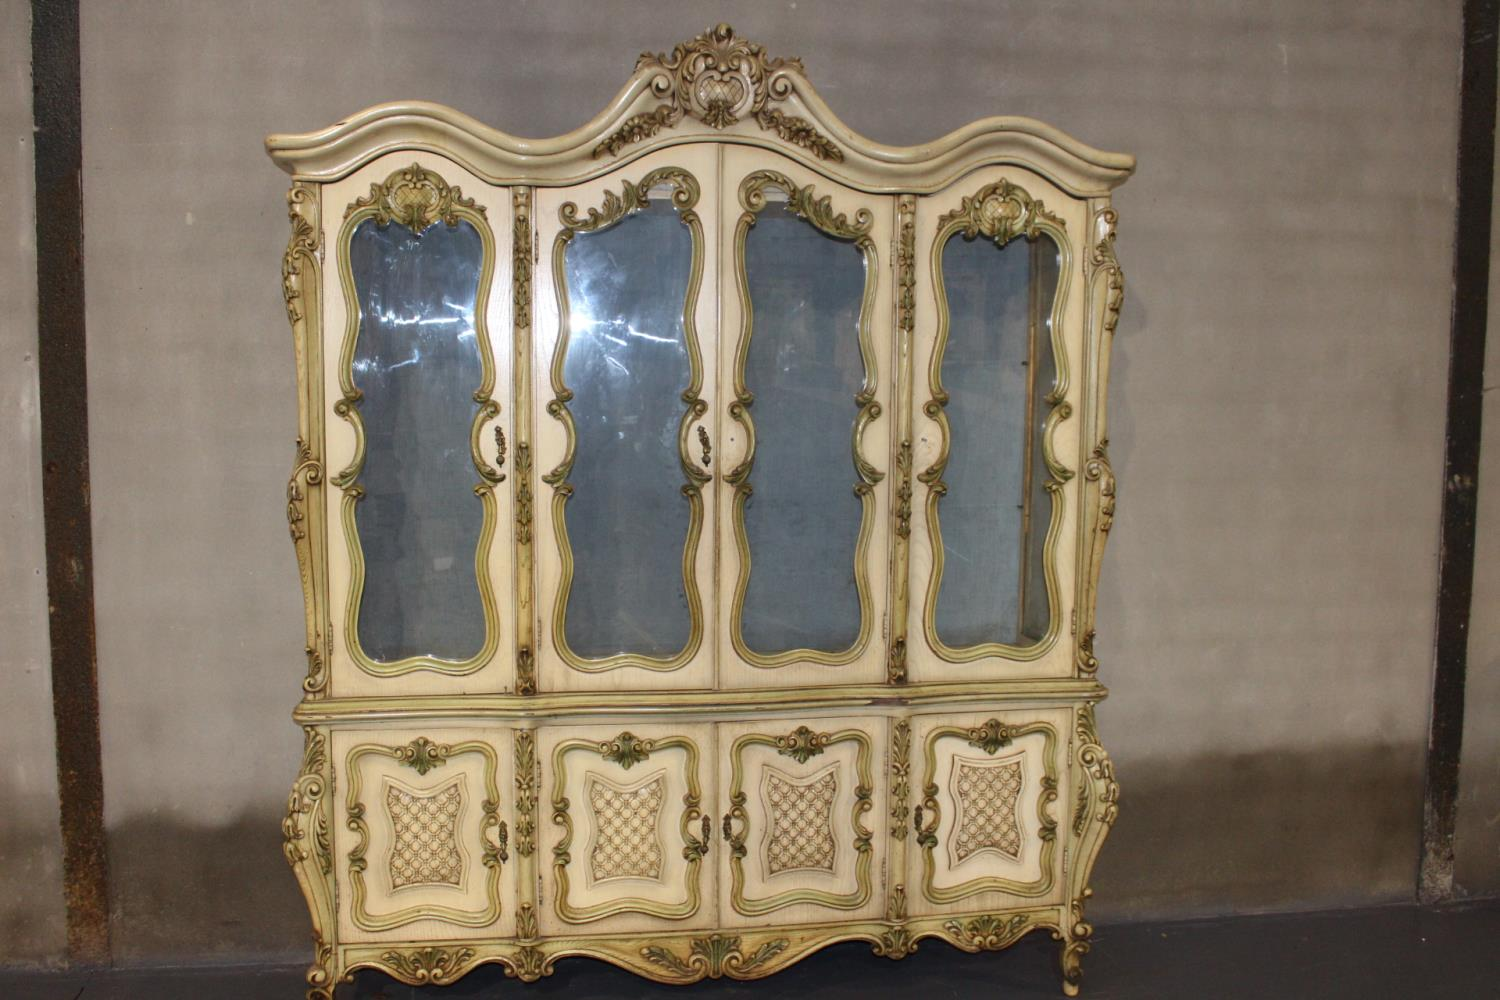 Giltwood French display cabinet - Image 2 of 2